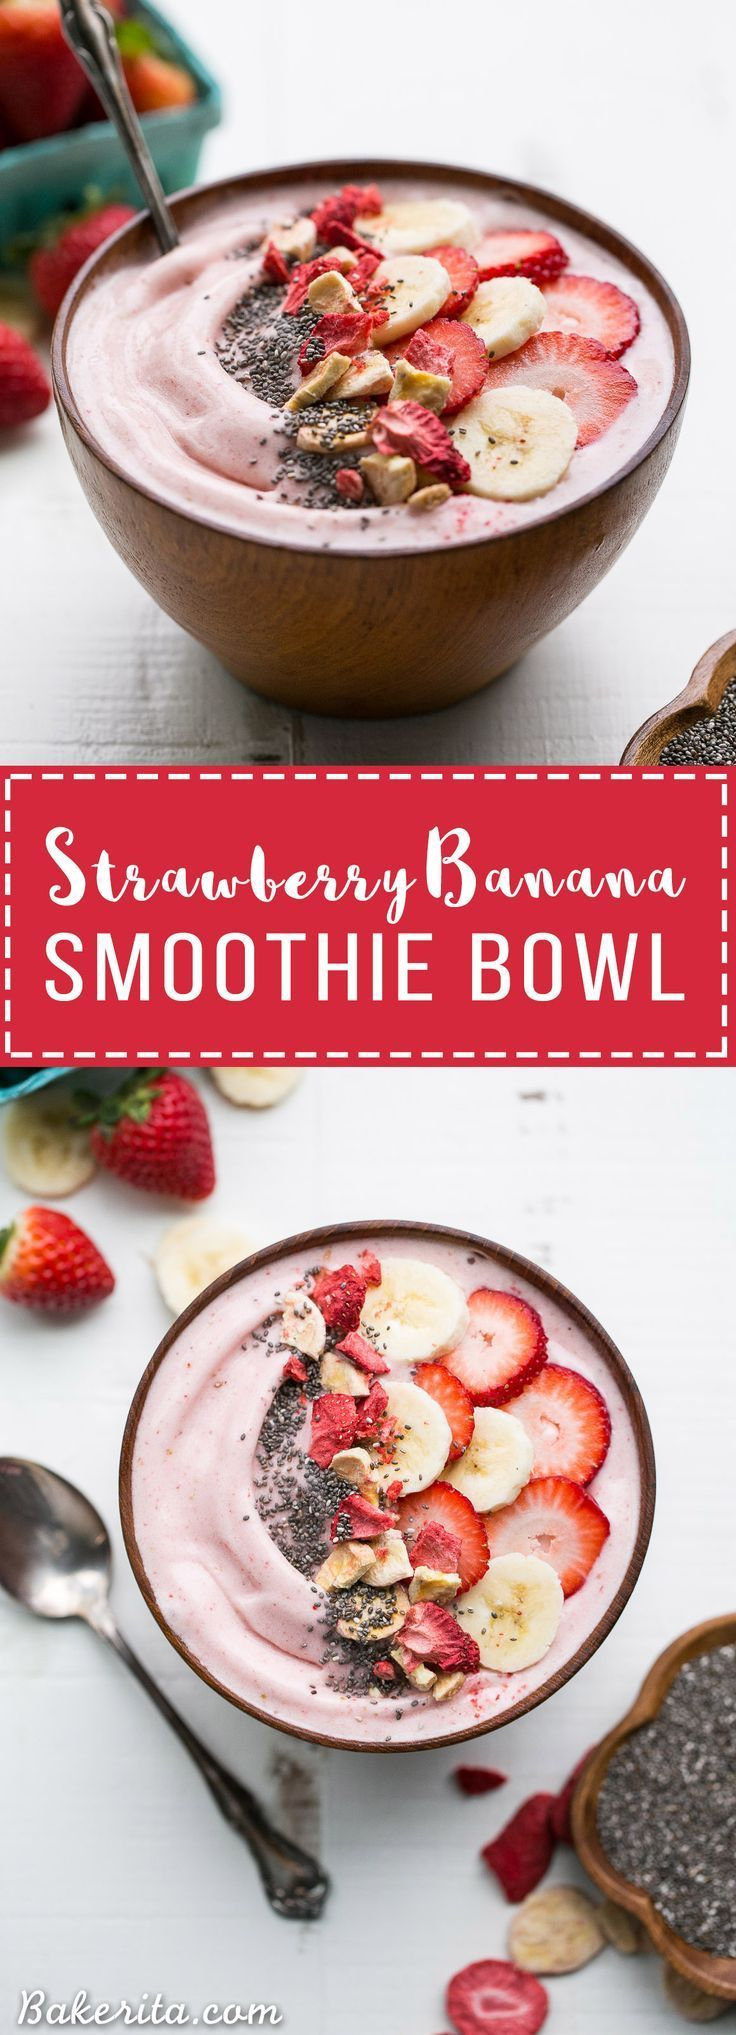 This easy Strawberry Banana Smoothie Bowl is a simple and sweet treat! It's a healthy Paleo + vegan breakfast or snack made with only a few ingredients, and you can add whichever toppings your heart desires to customize to your tastes.